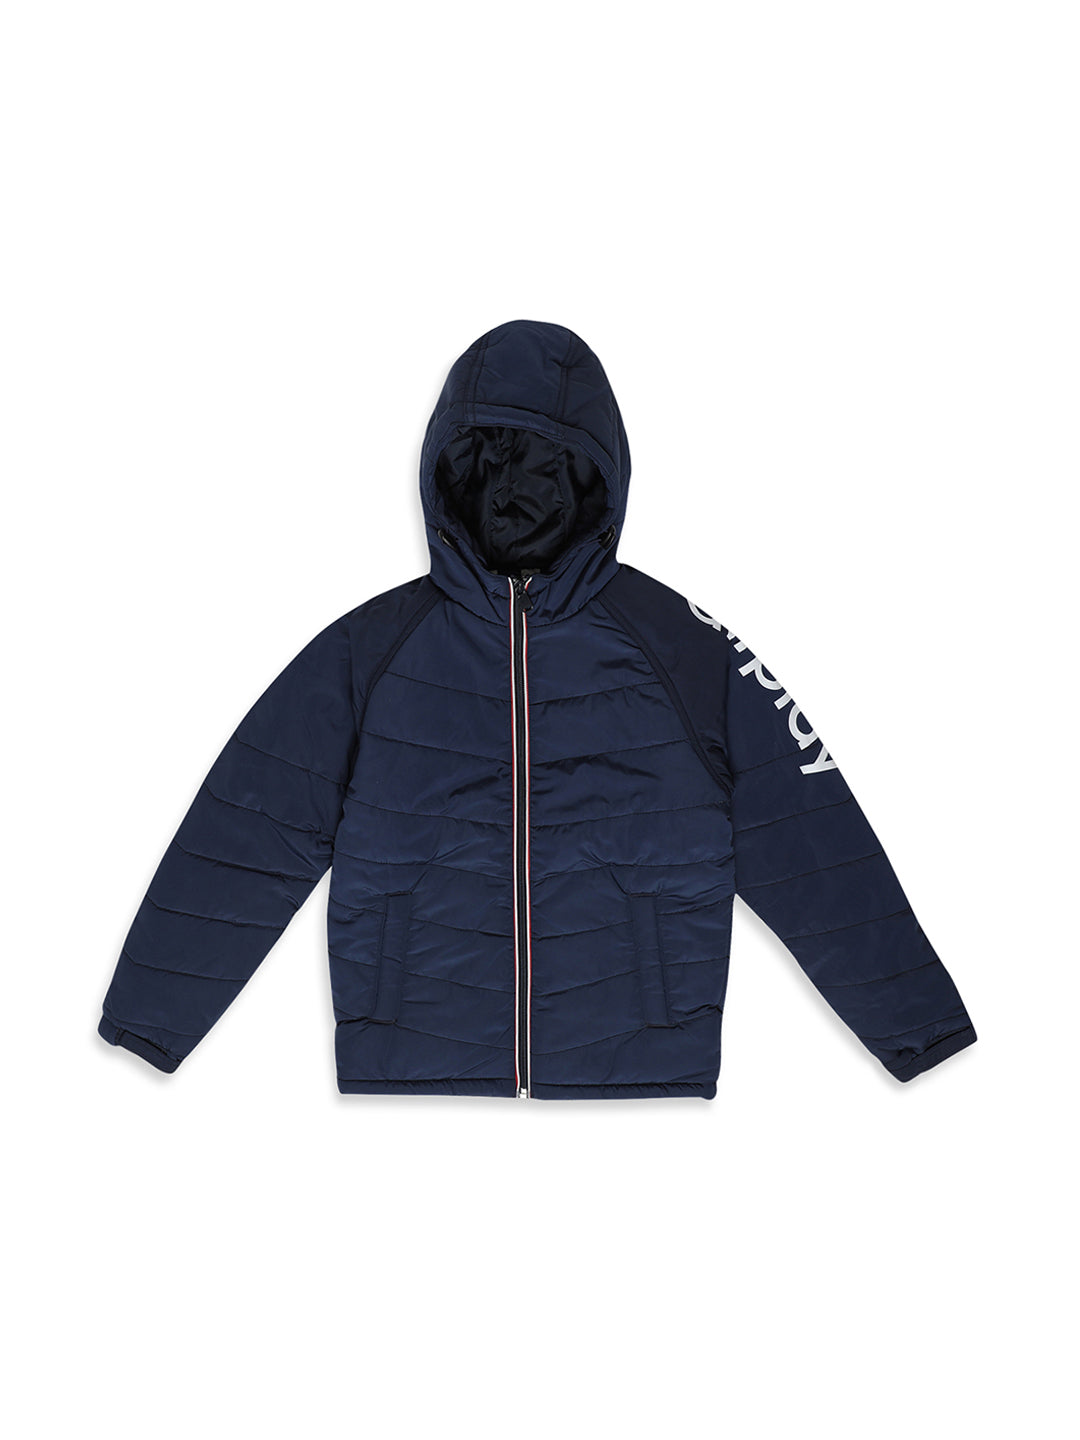 Octave Apparels Navy Hoodie Jacket for Kids